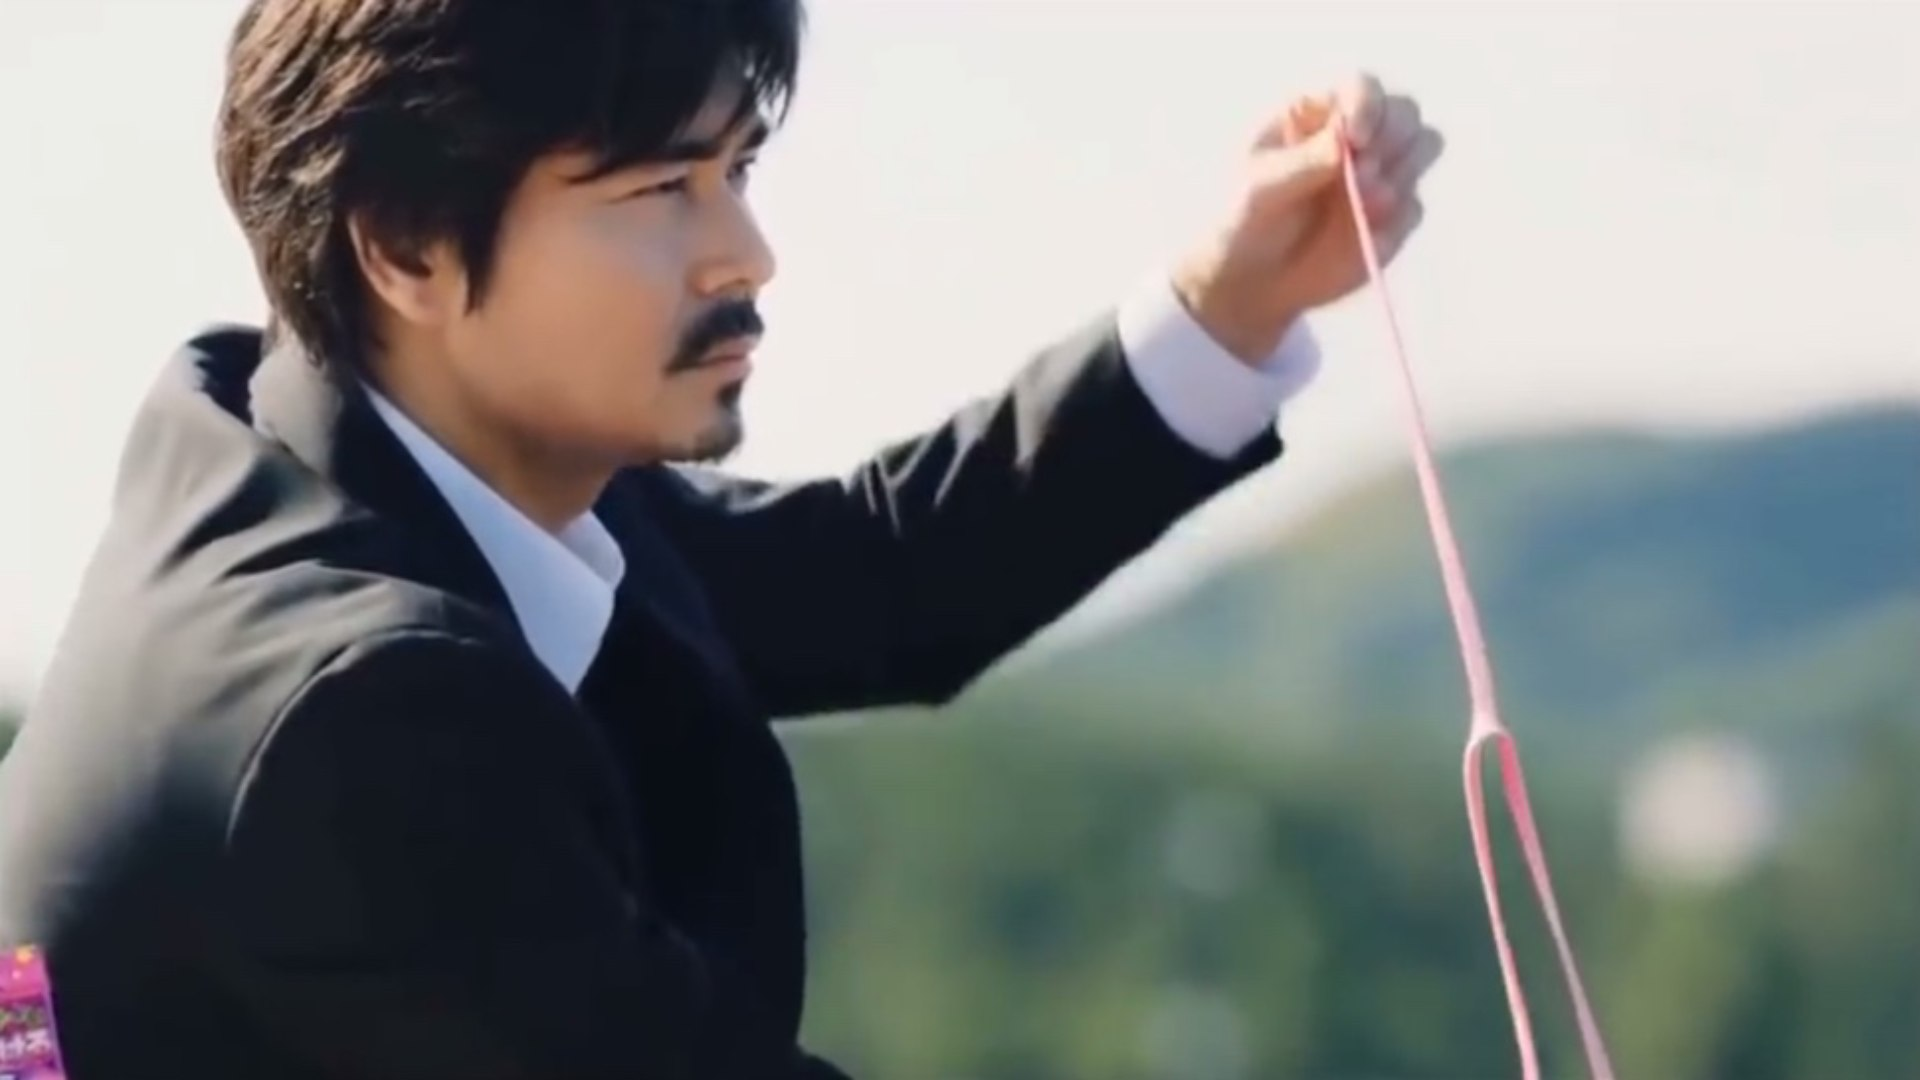 Why I love Long Long Man, the Japanese candy commercial with romance, intrigue and scandal at its heart